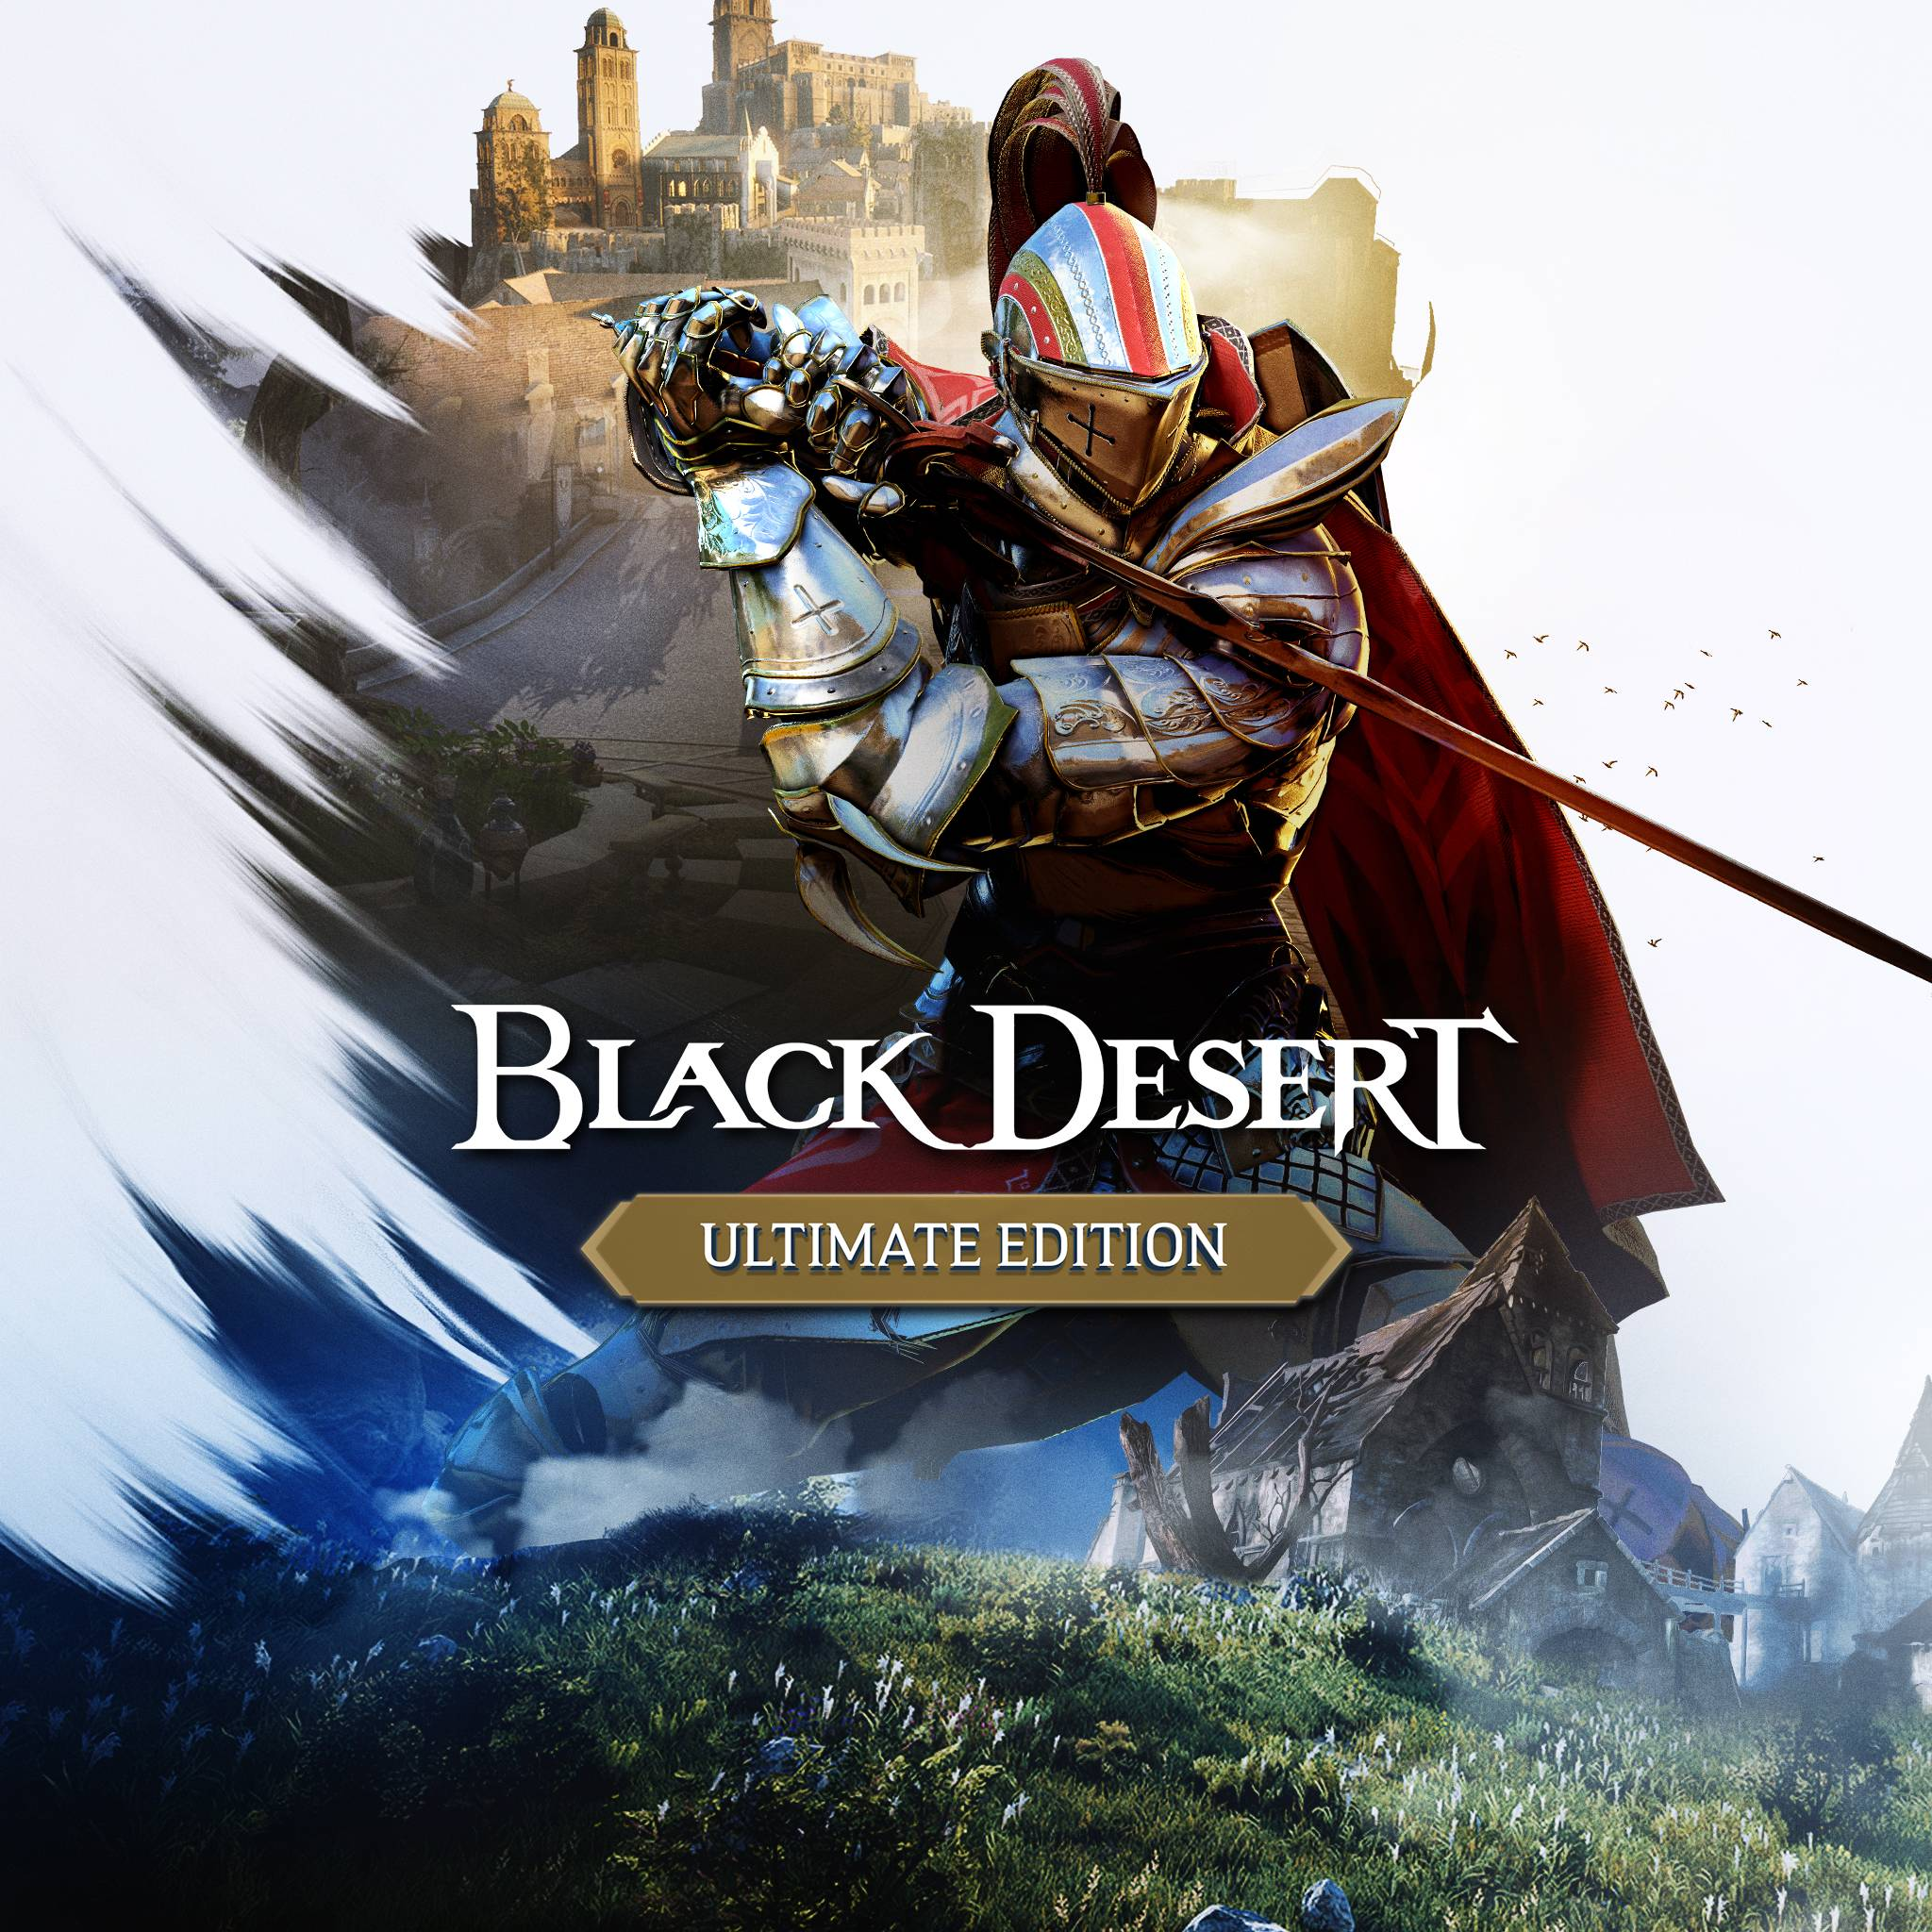 Thumbnail of Black Desert : Ultimate Edition on PS4